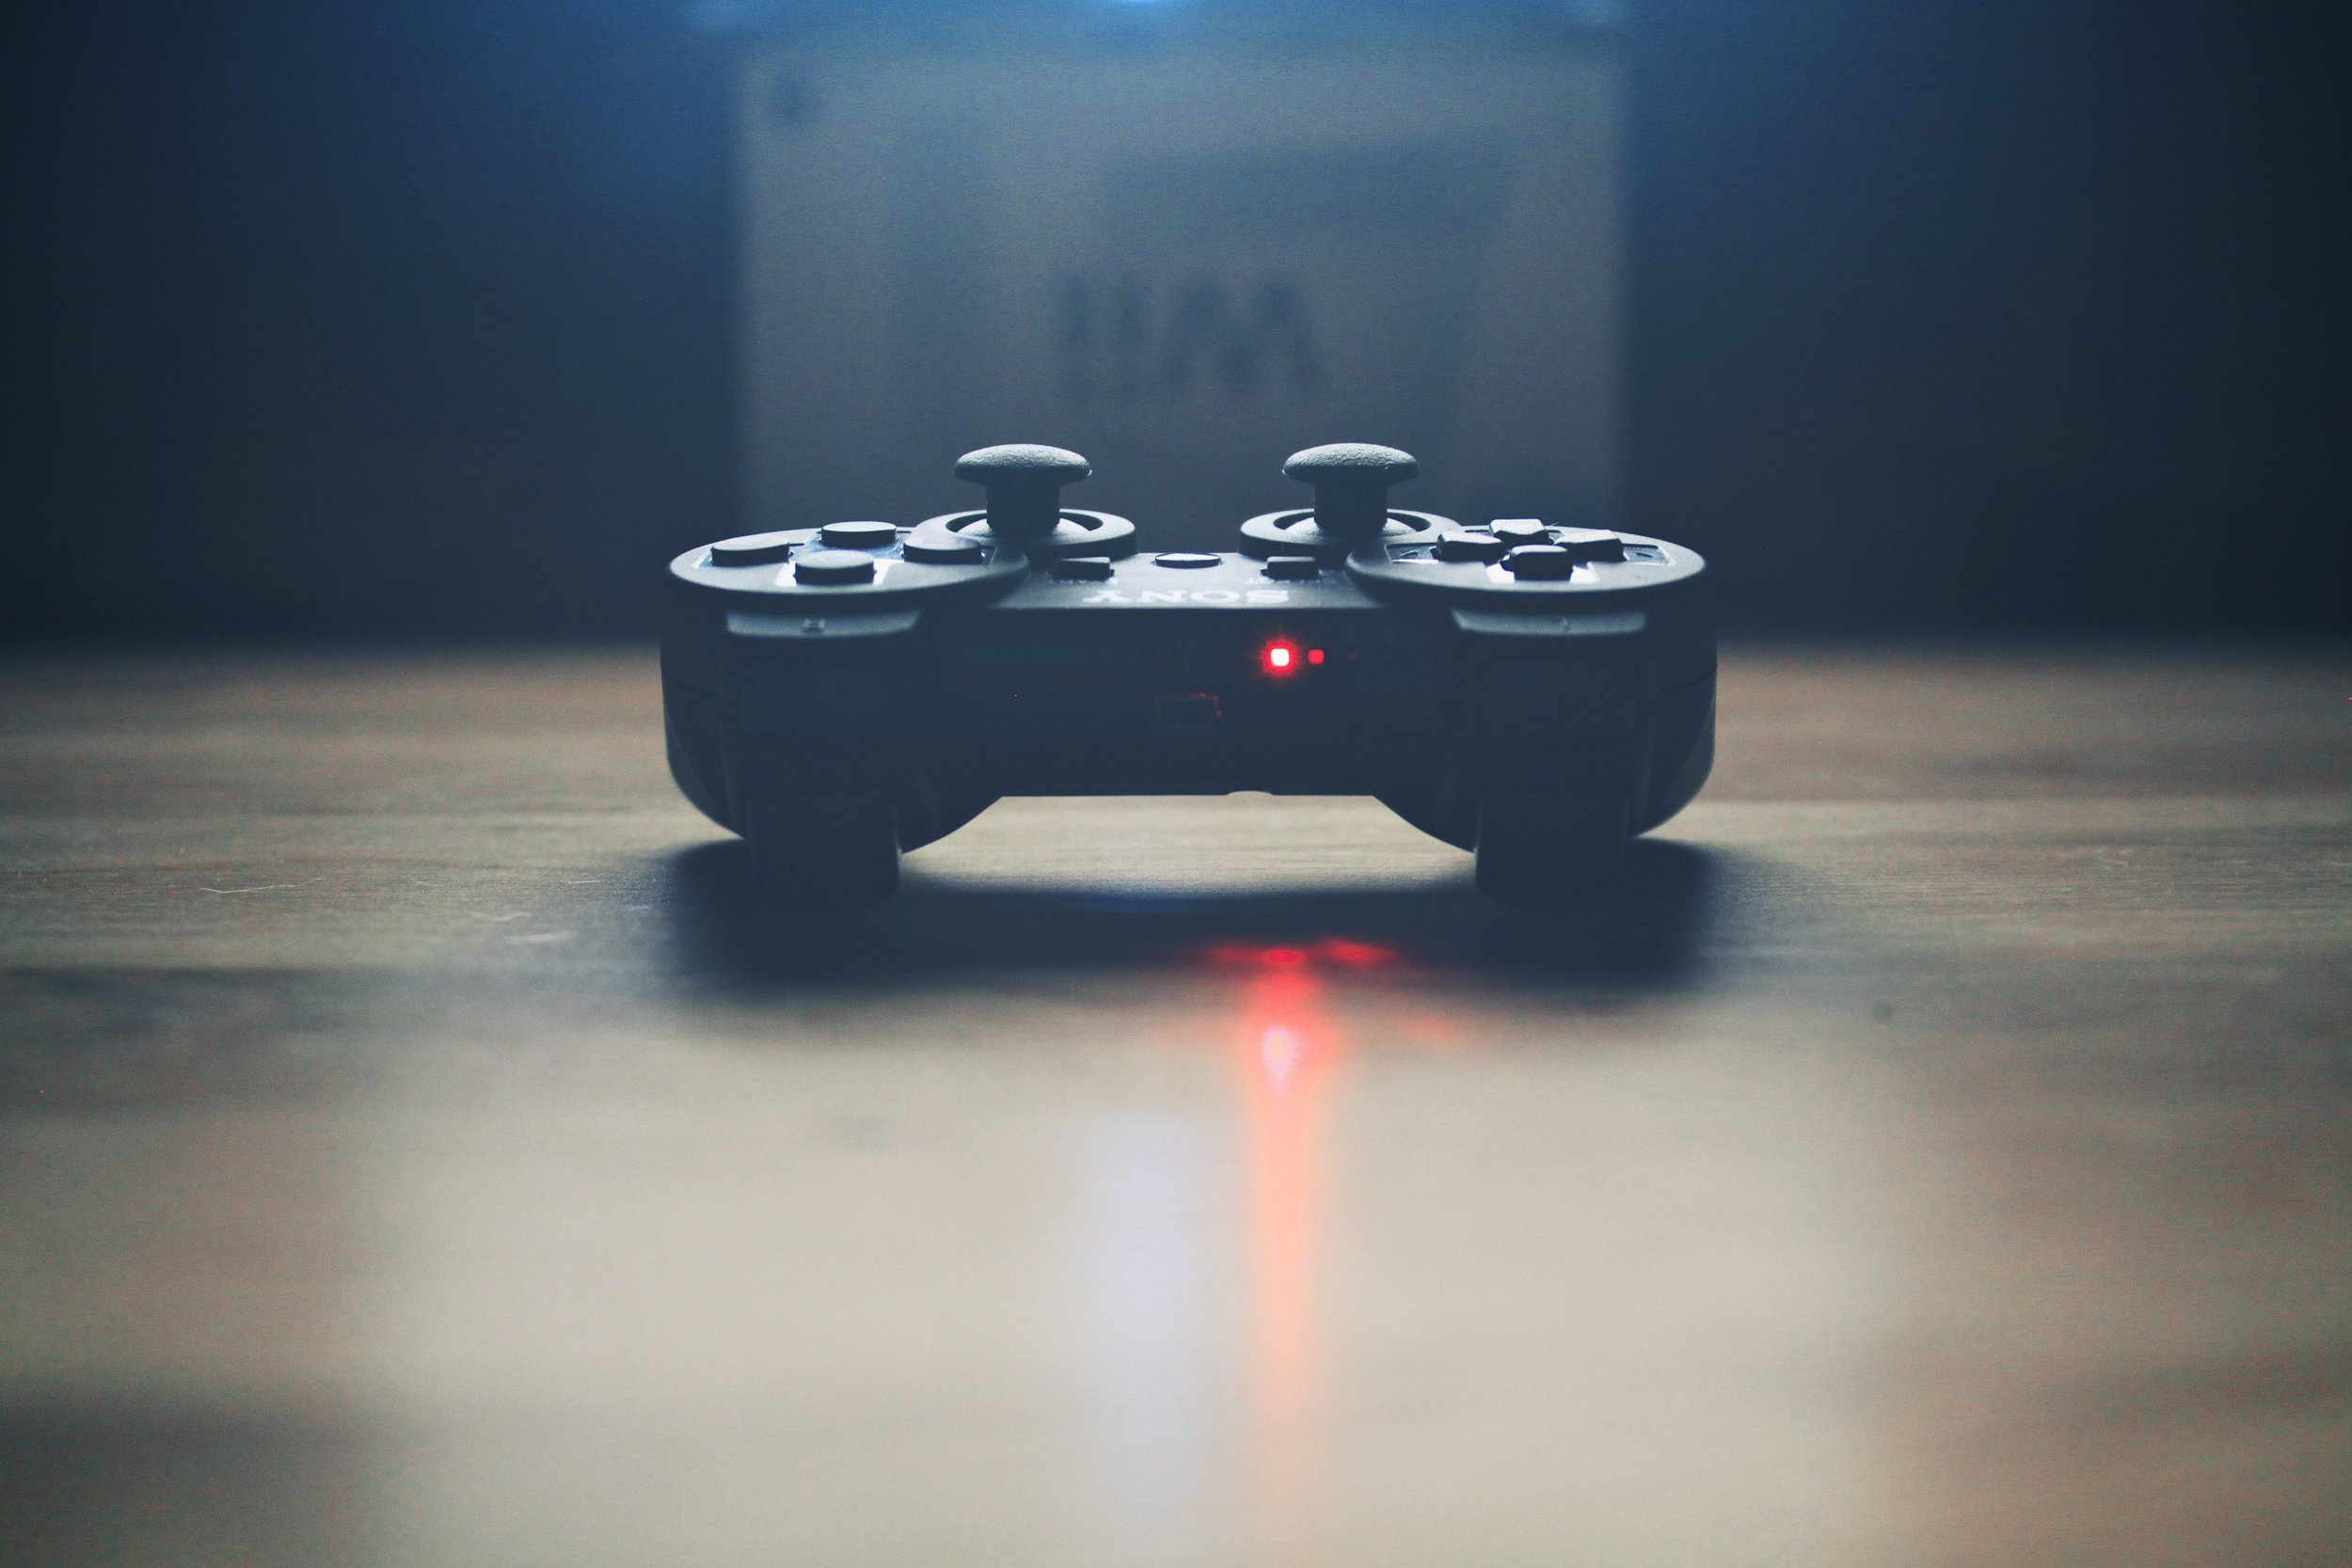 Video Game Re-score - Are you a gamer? You don't need to be to do this project. Re-imagine the sounds of a video game in this project.